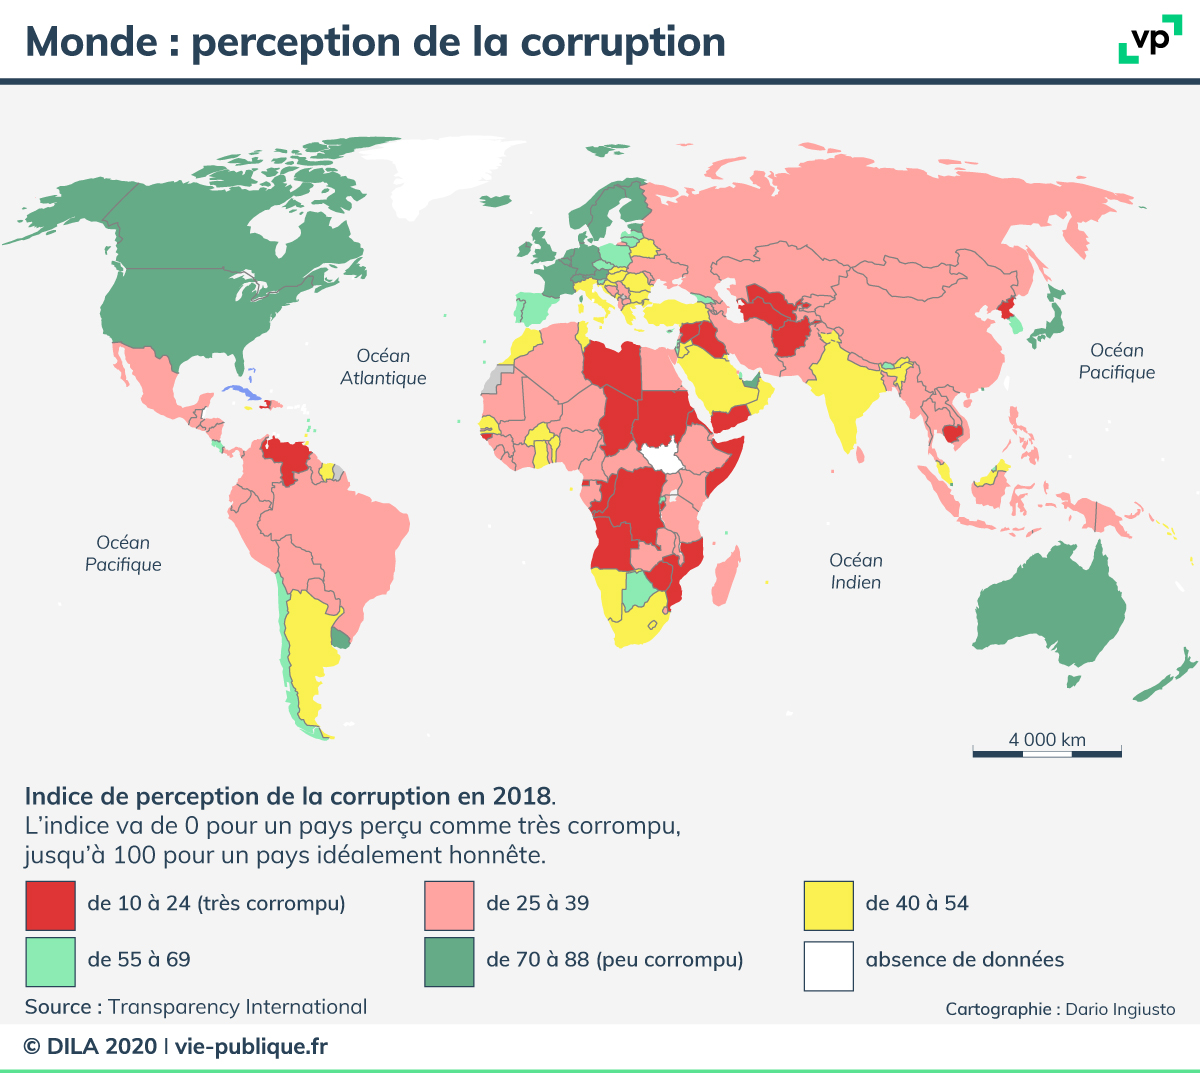 Carte du monde : perception de la corruption en 2018. Description de la carte ci-dessous